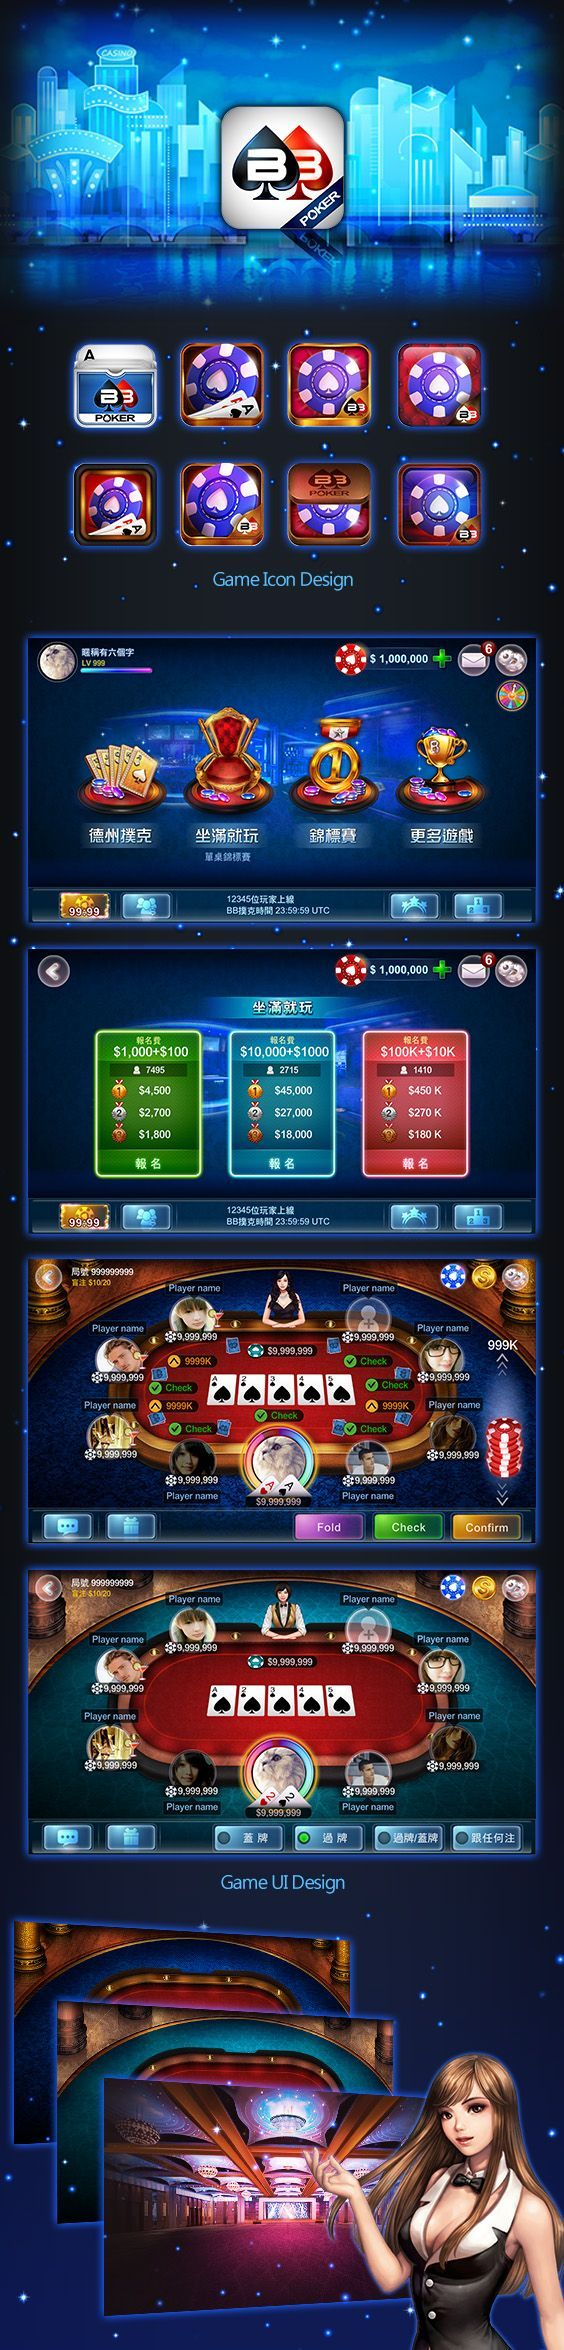 Game ui / Texas Holdem Poker Design #App: